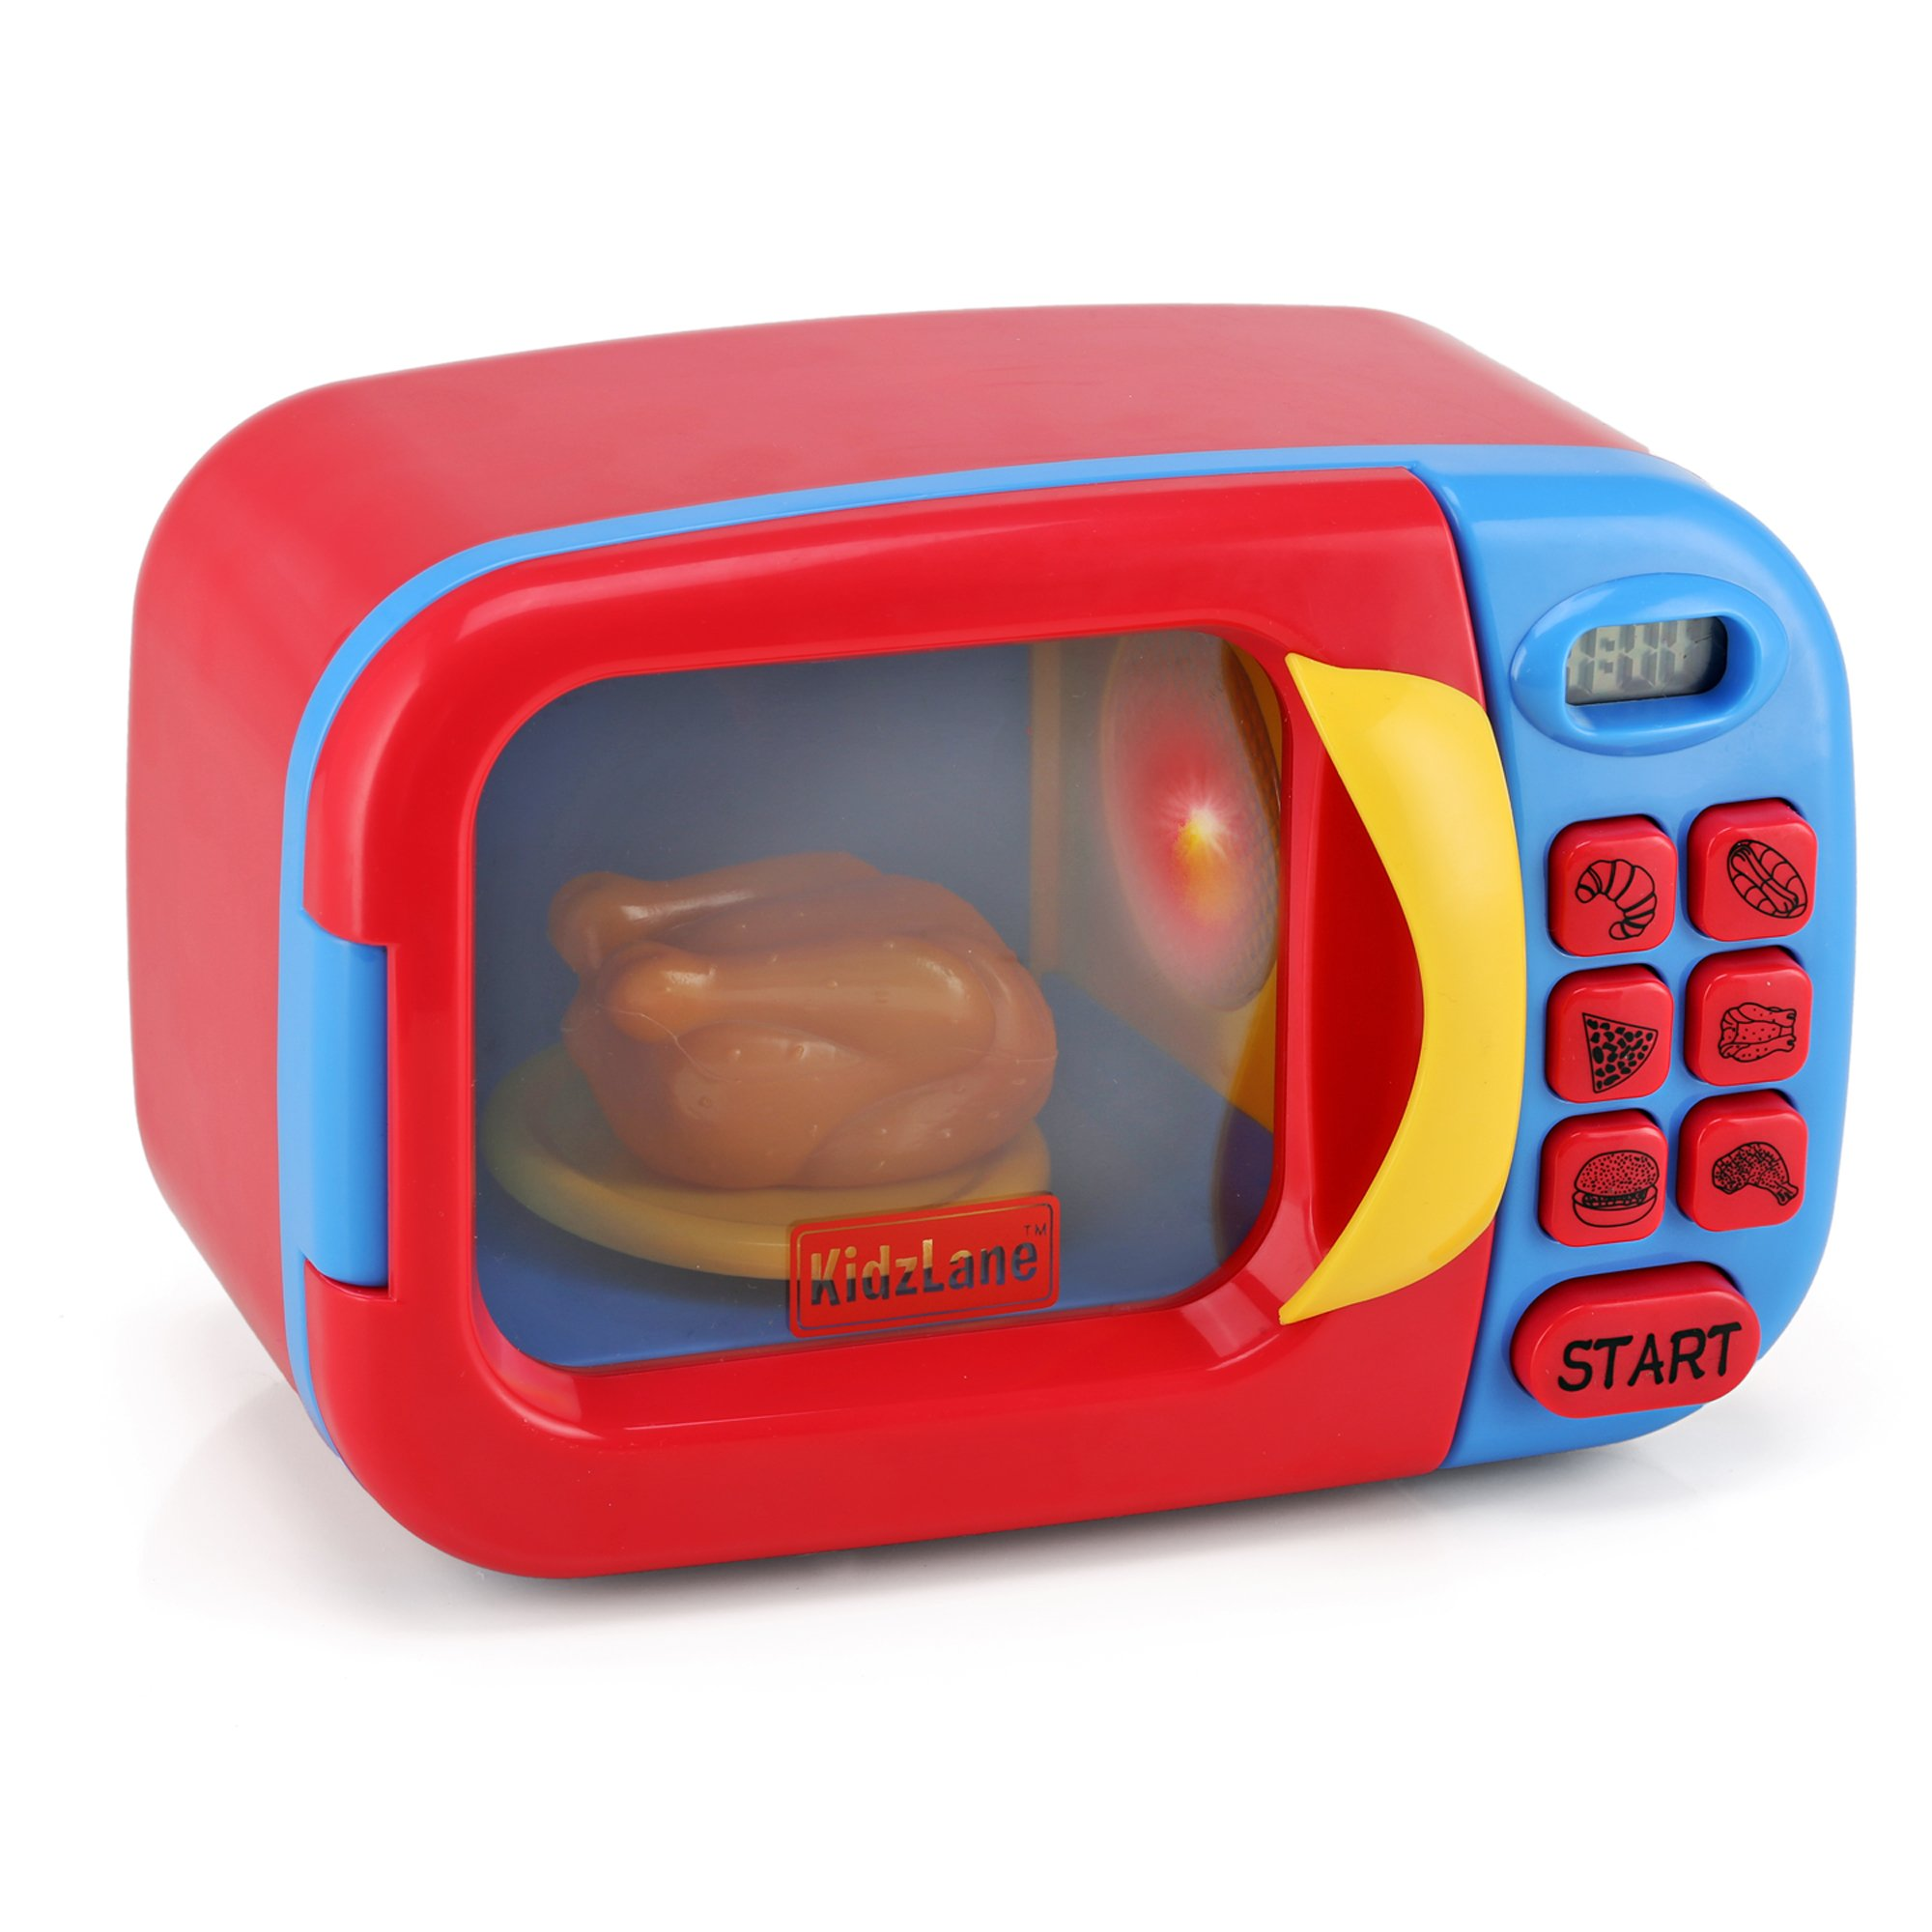 kids play kitchen accessories best flooring for a buy kidzlane microwave oven toy pretend